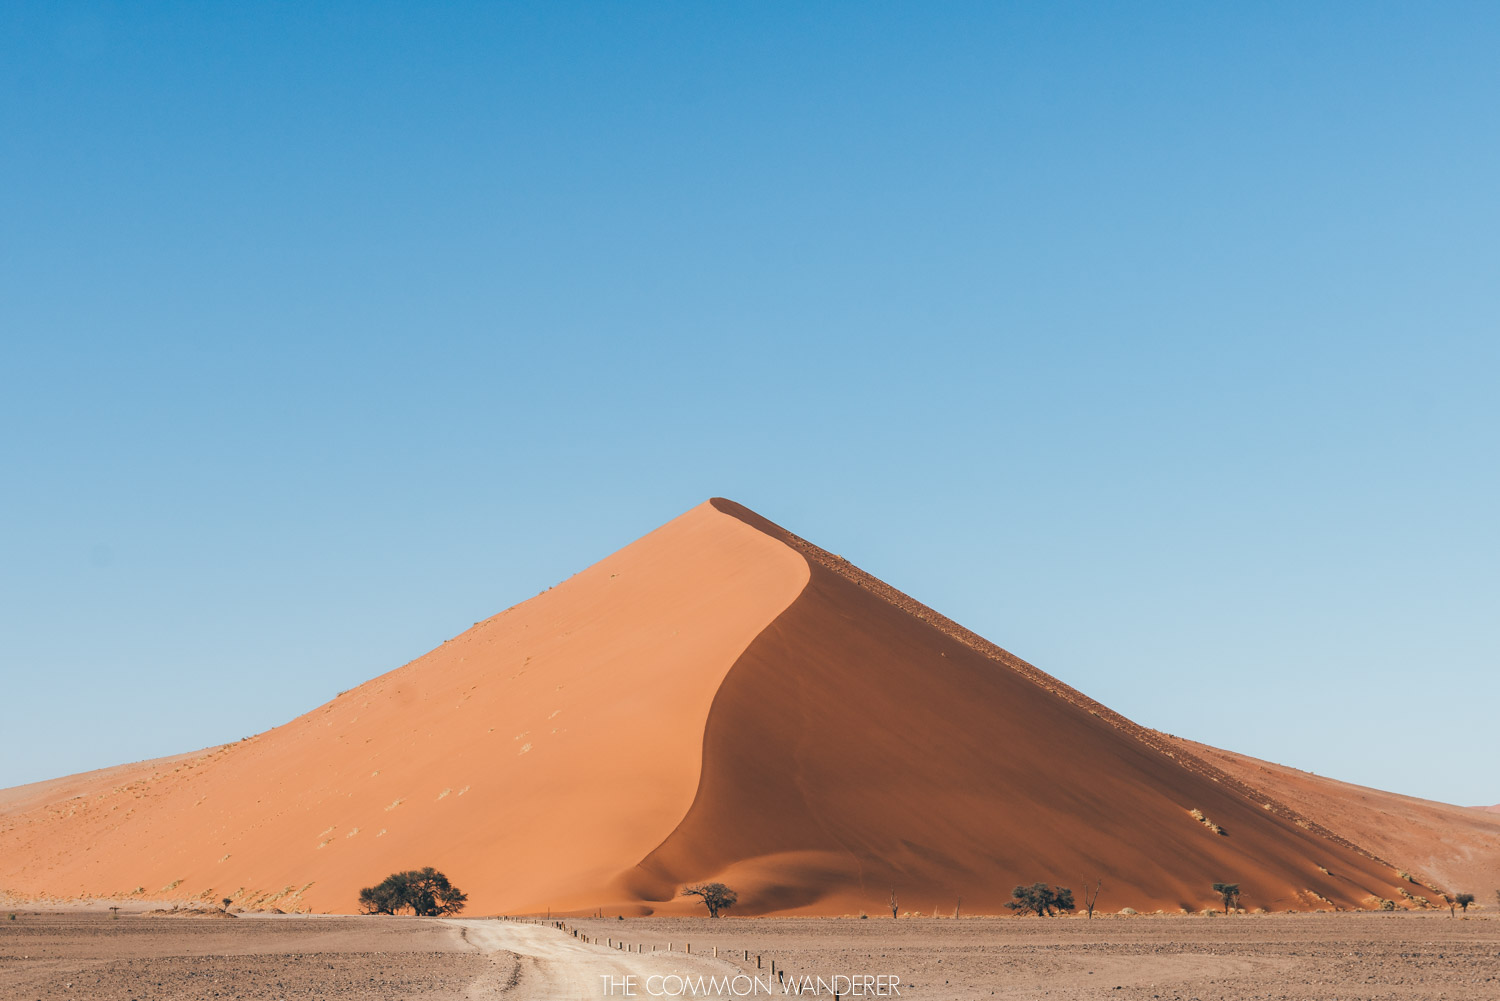 A PHOTO JOURNEY THROUGH SOSSUSVLEI NAMIBIA